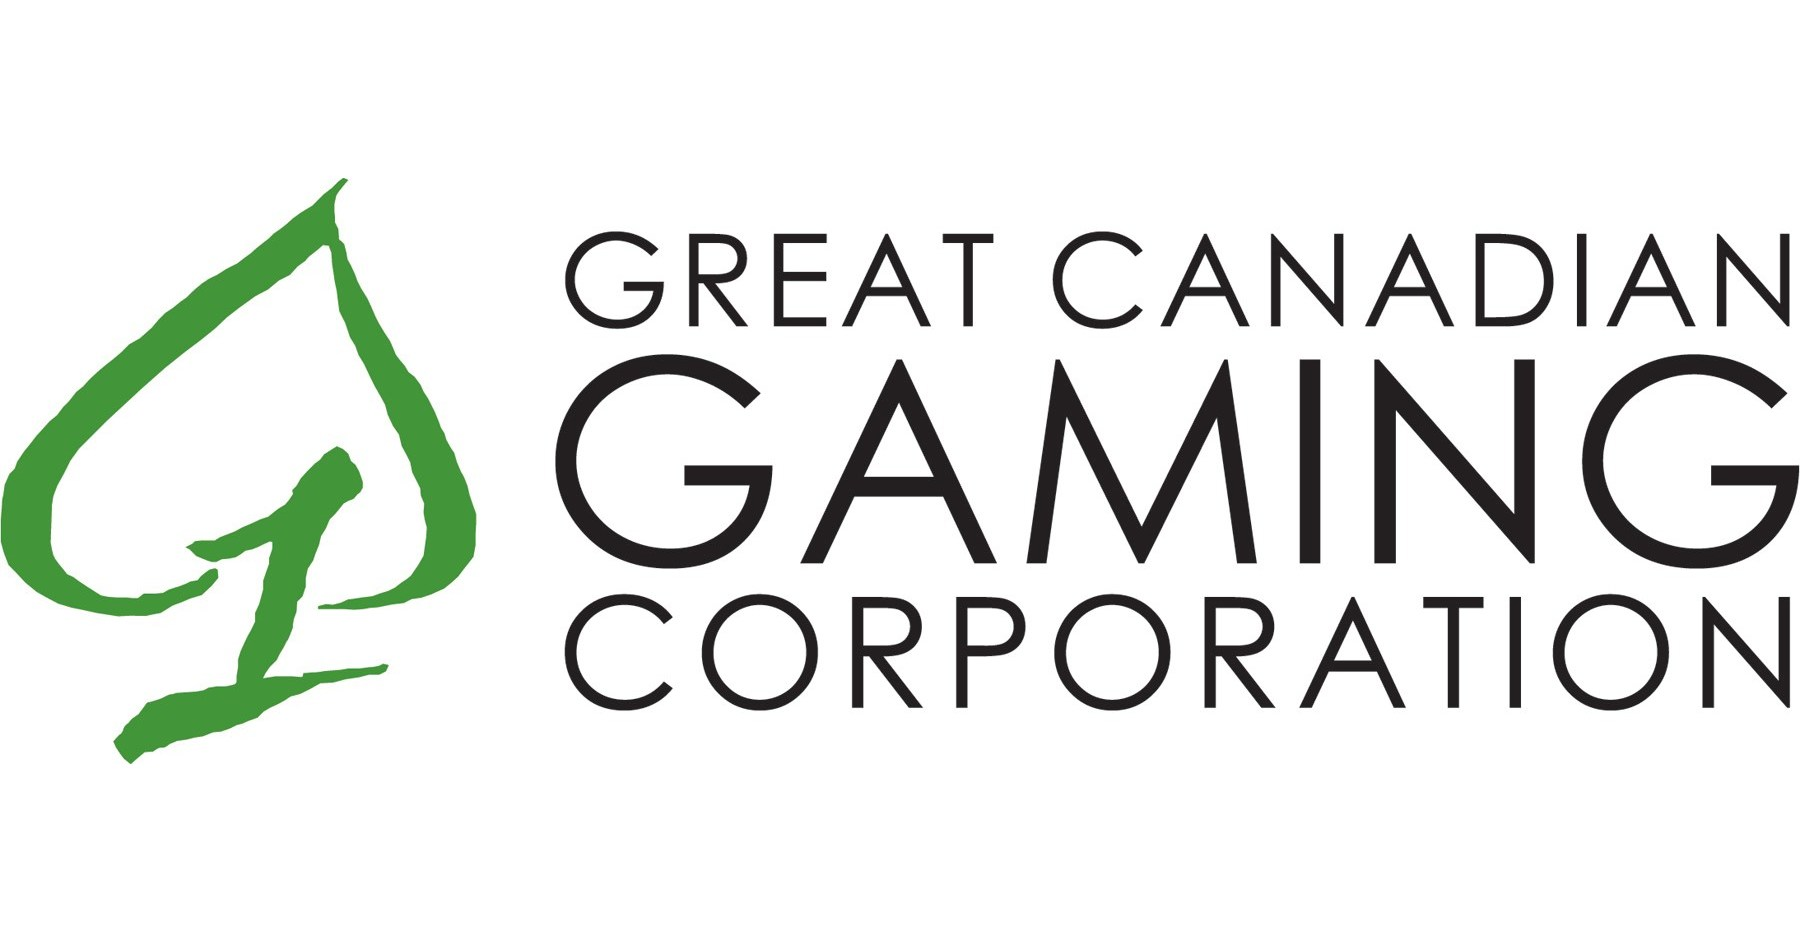 Vgambling And Other Canadian Gambling Companies Go Public